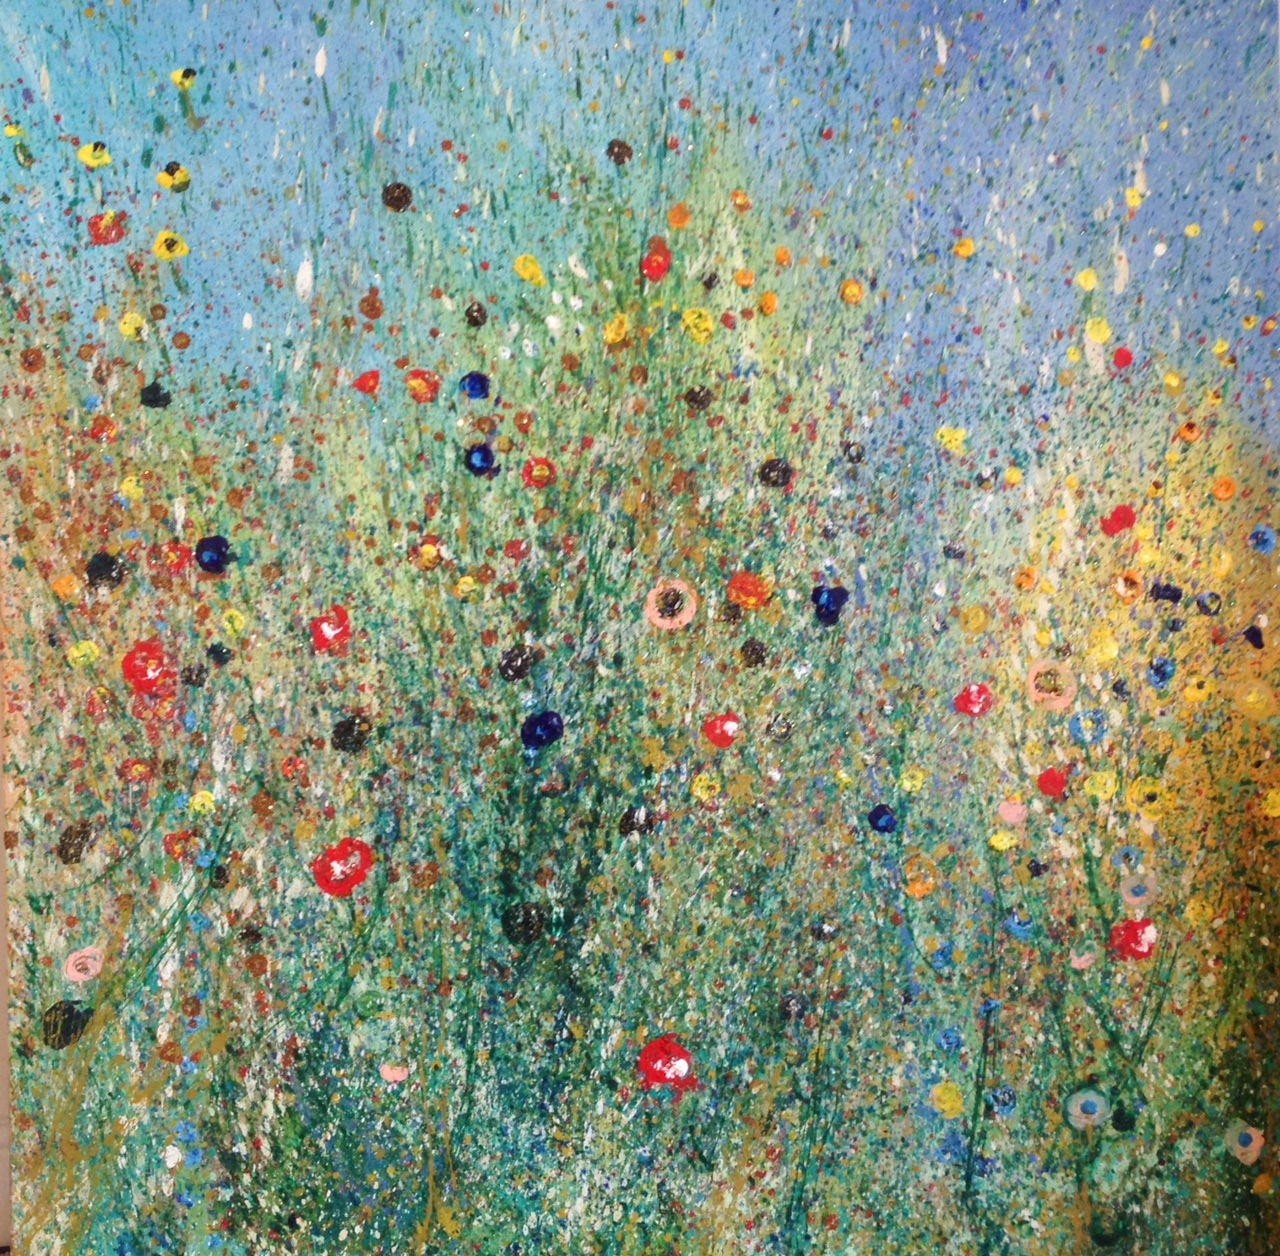 Wild Summer 2 artwork by Cheney Fairchild - art listed for sale on Artplode